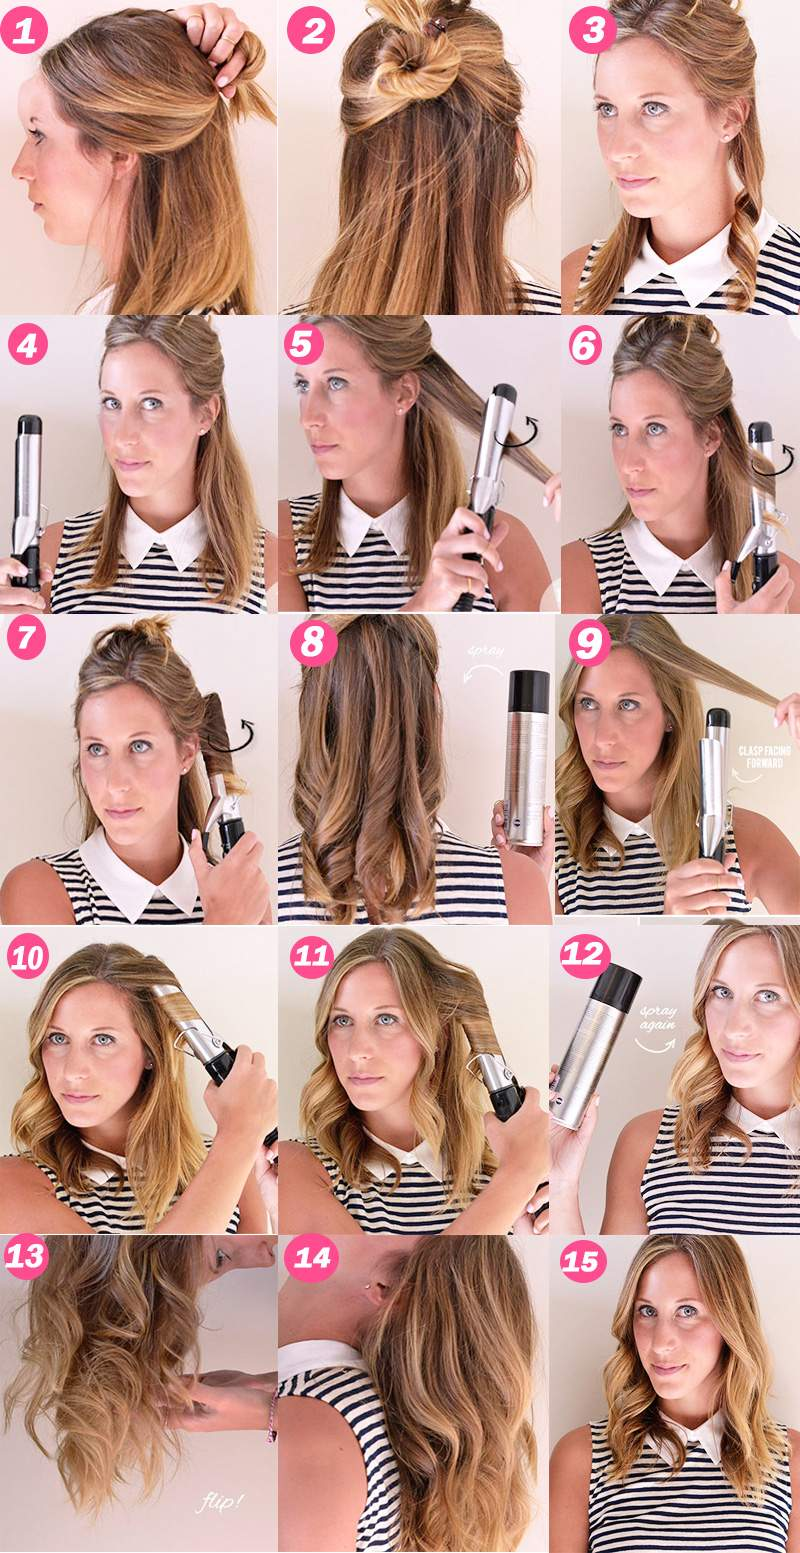 how to curling hair properly